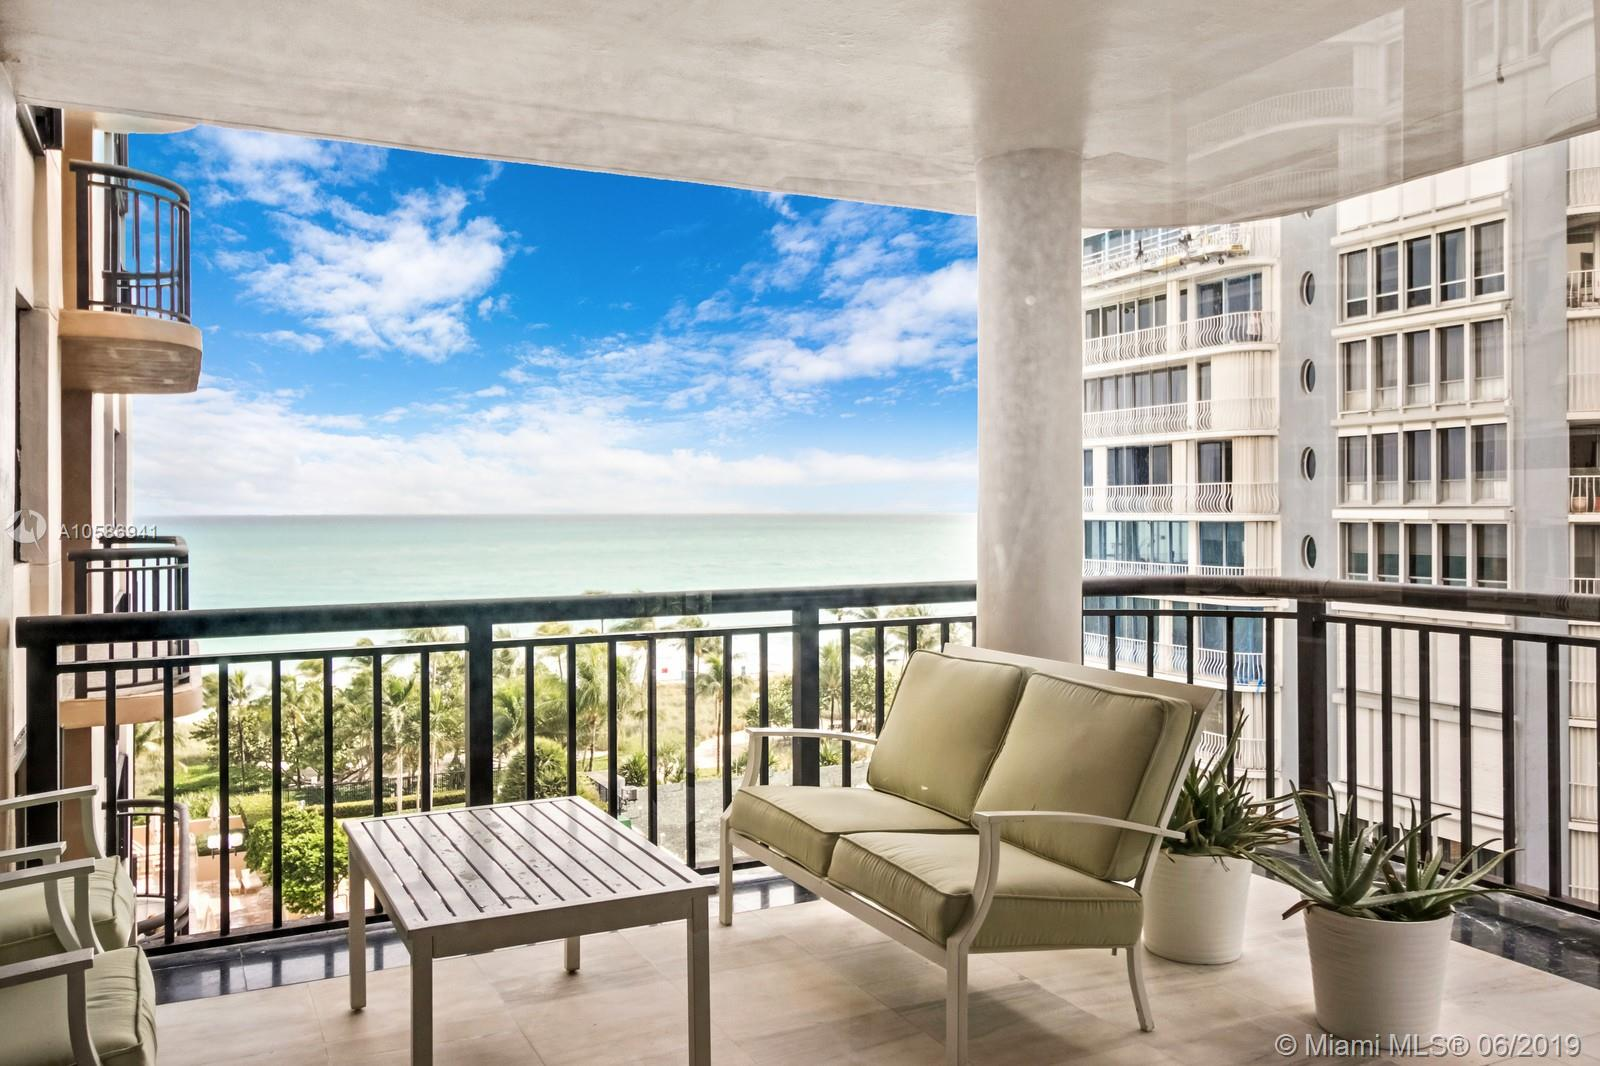 primary photo for 10175 Collins Ave 604, Bal Harbour, FL 33154, US